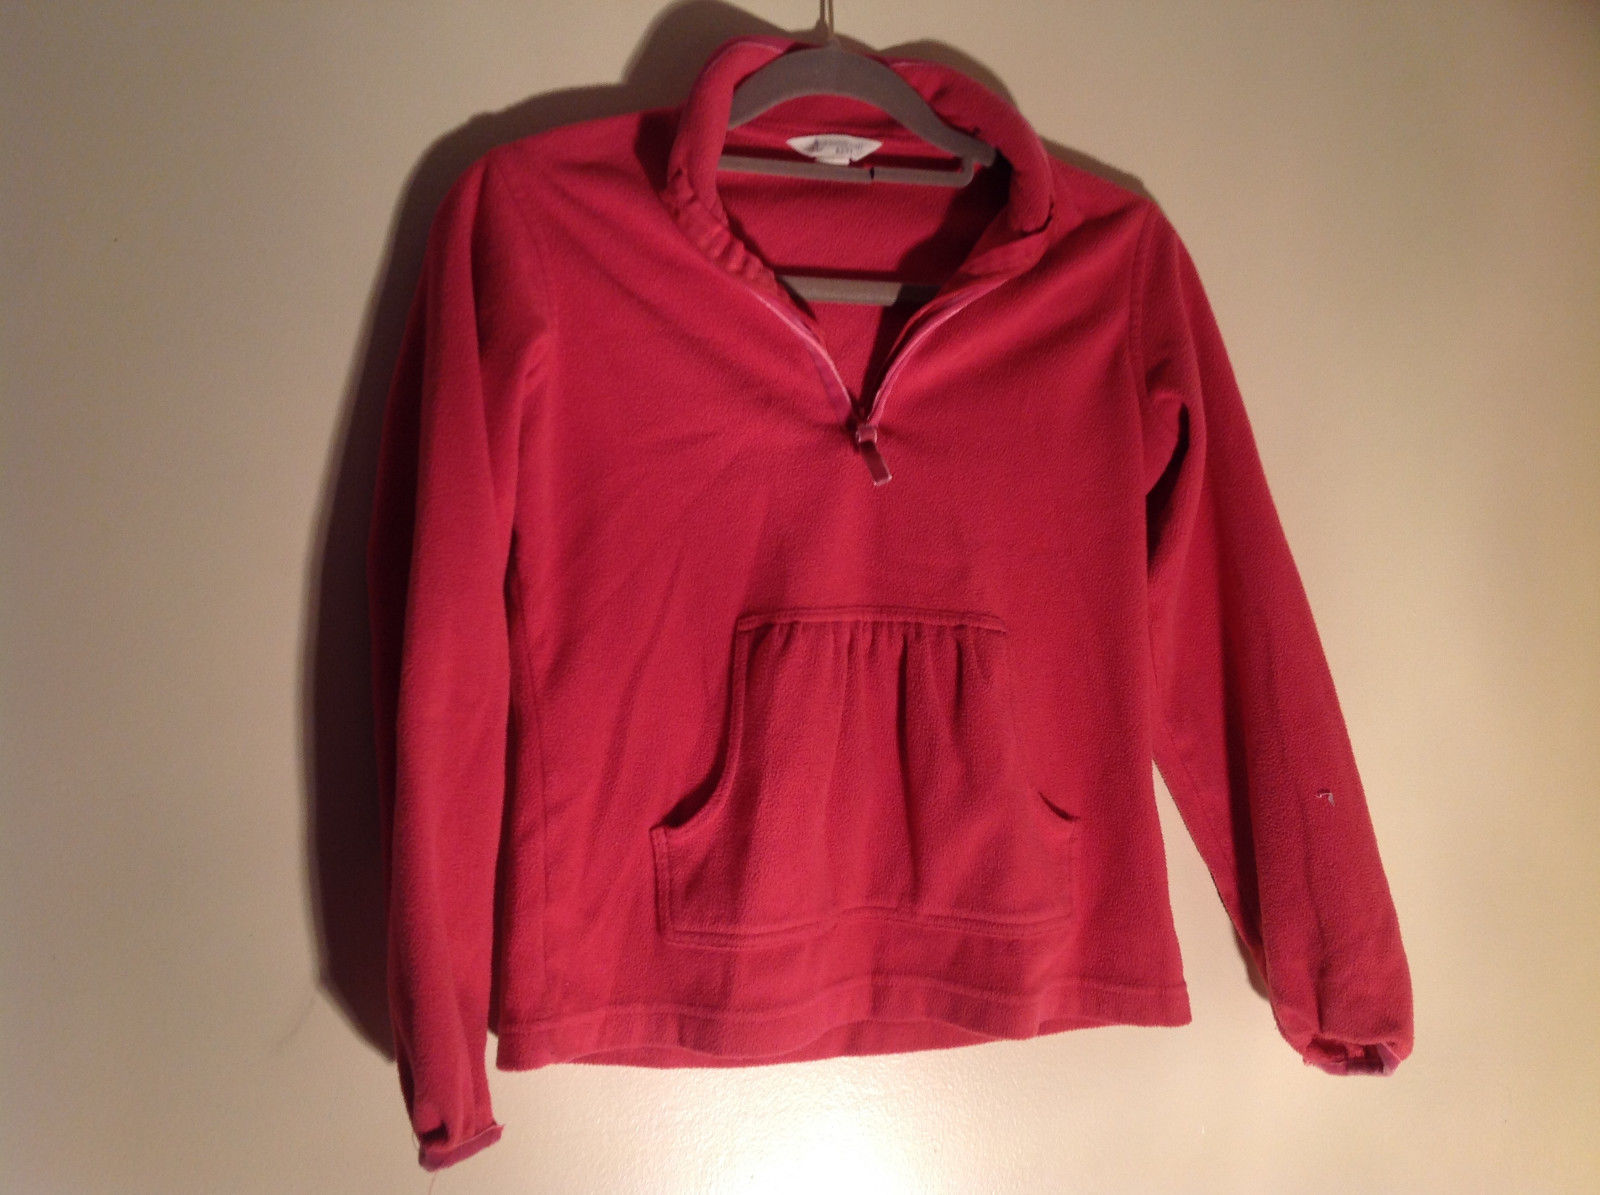 Cute Pink Long Sleeve Sweatshirt by Lands End Size Small